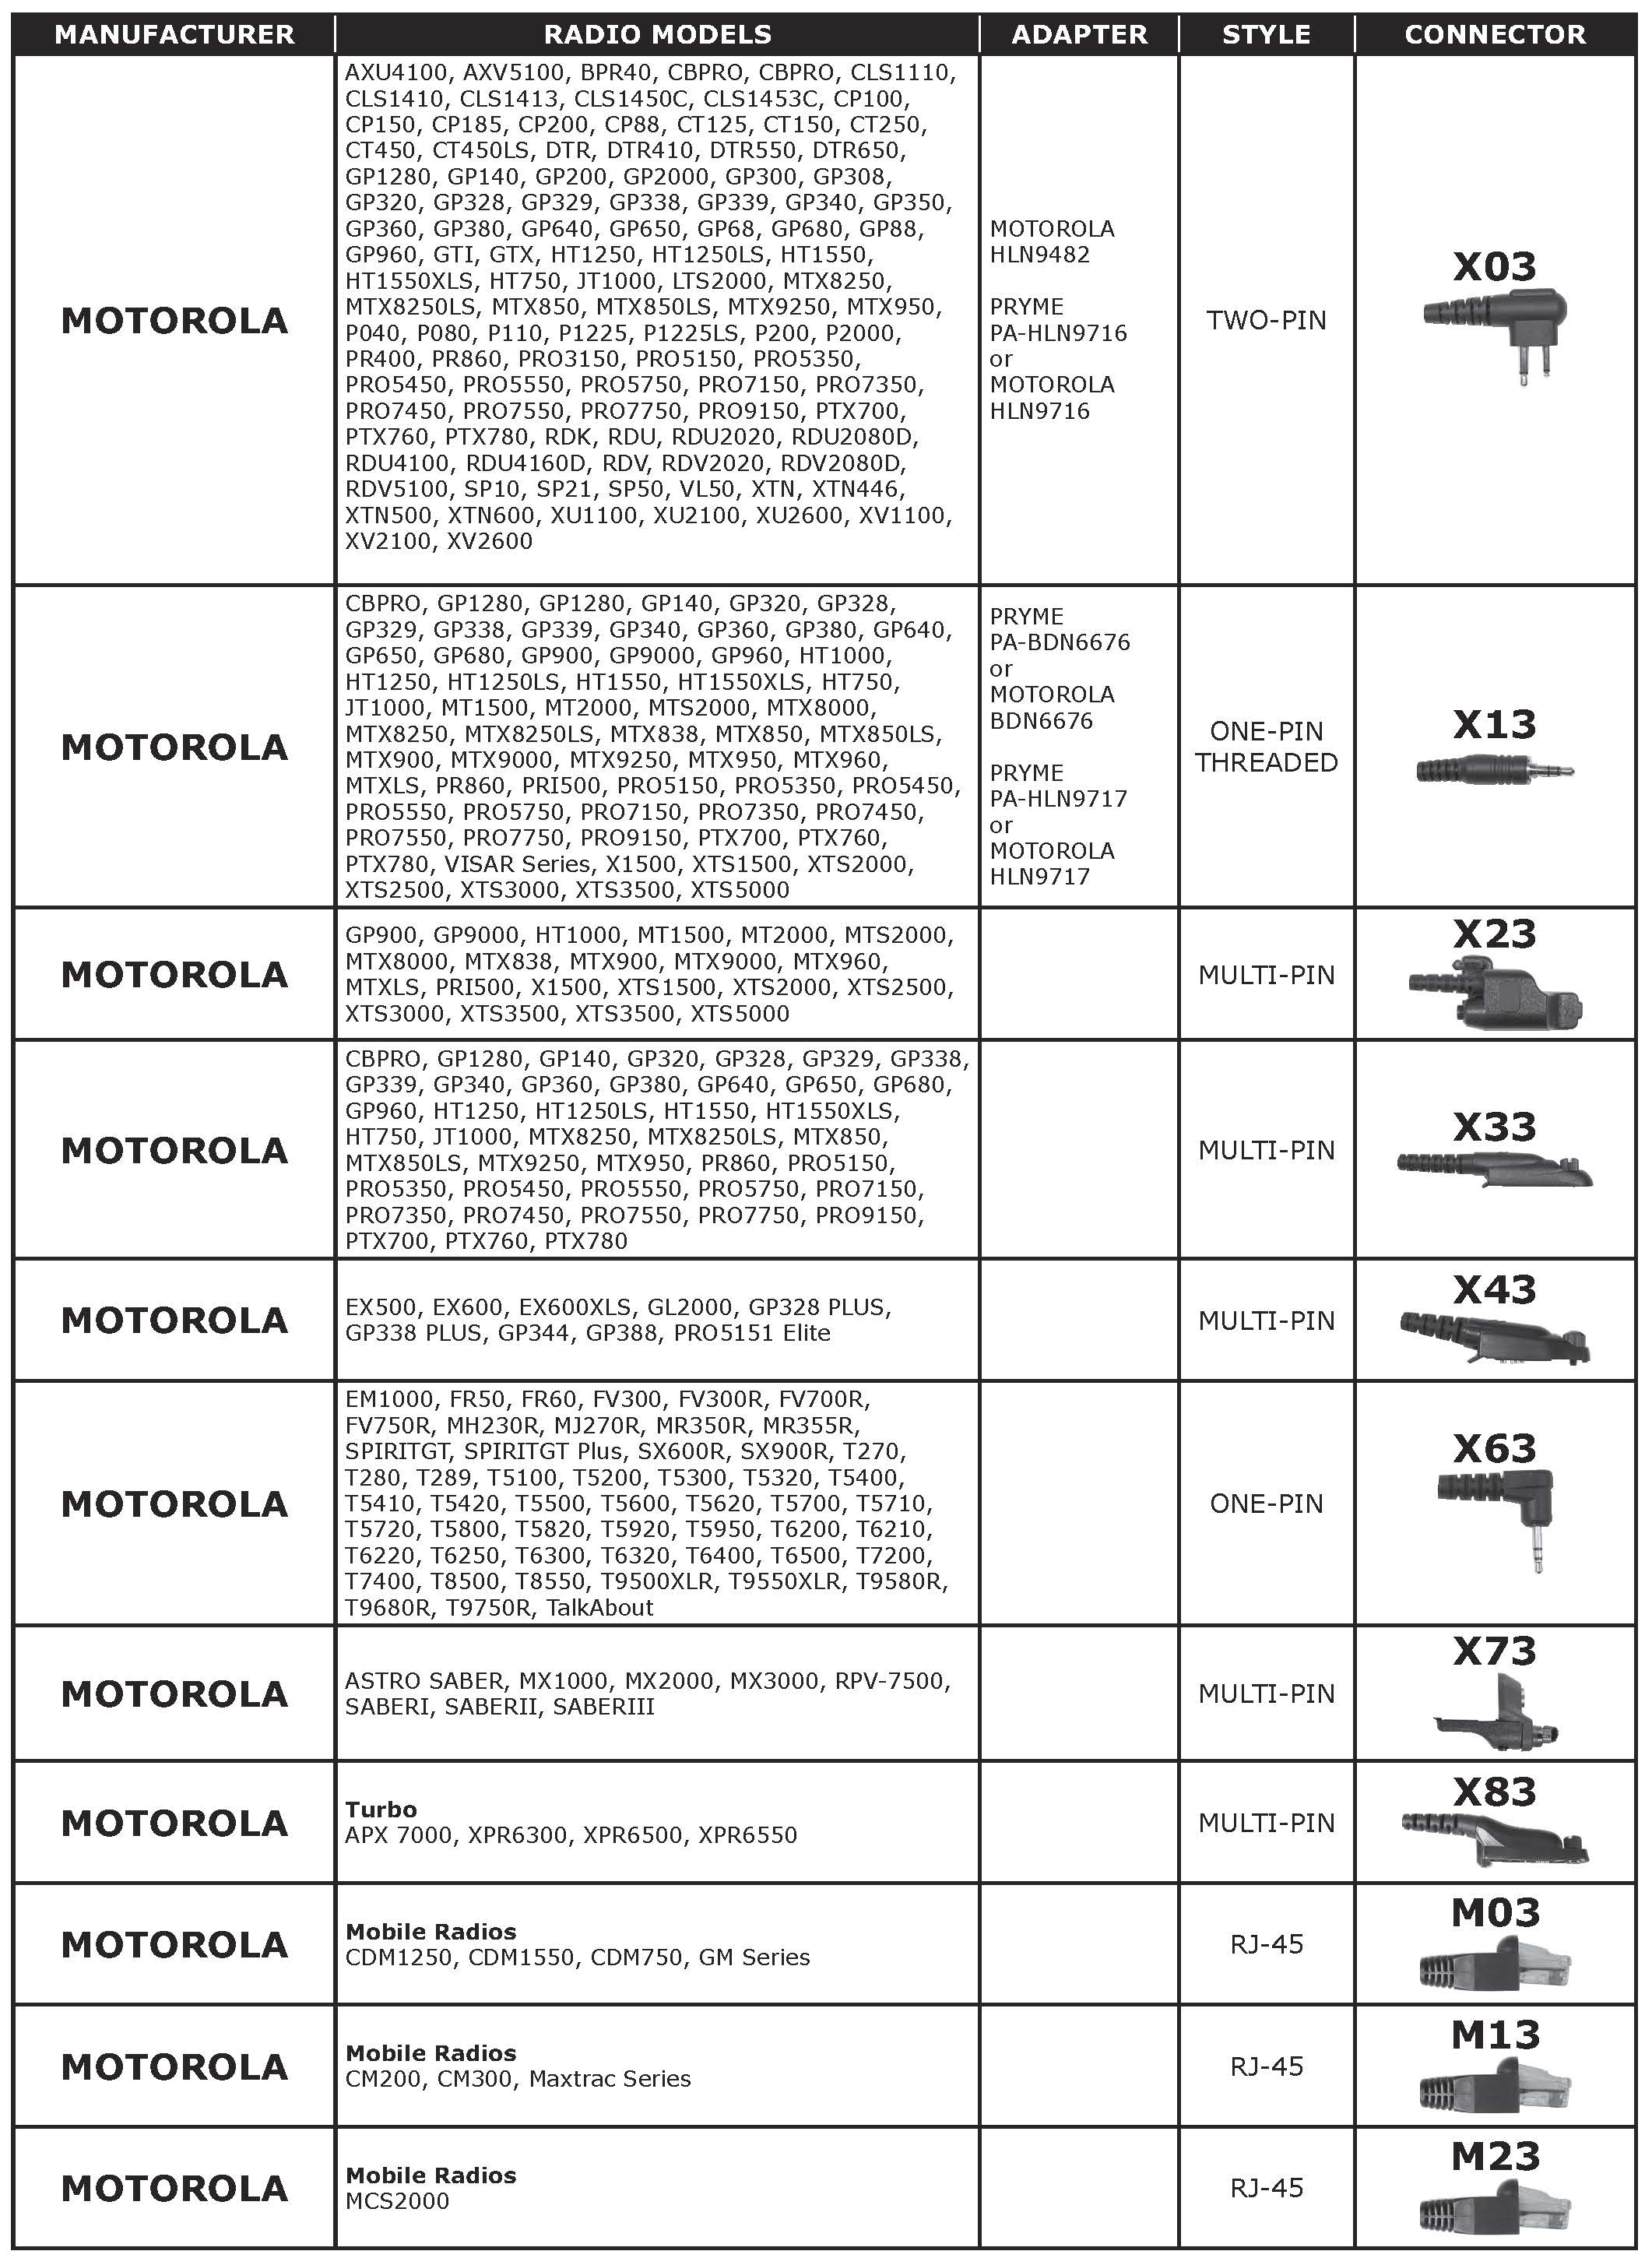 pryme-connecter-chart-page-3.jpg